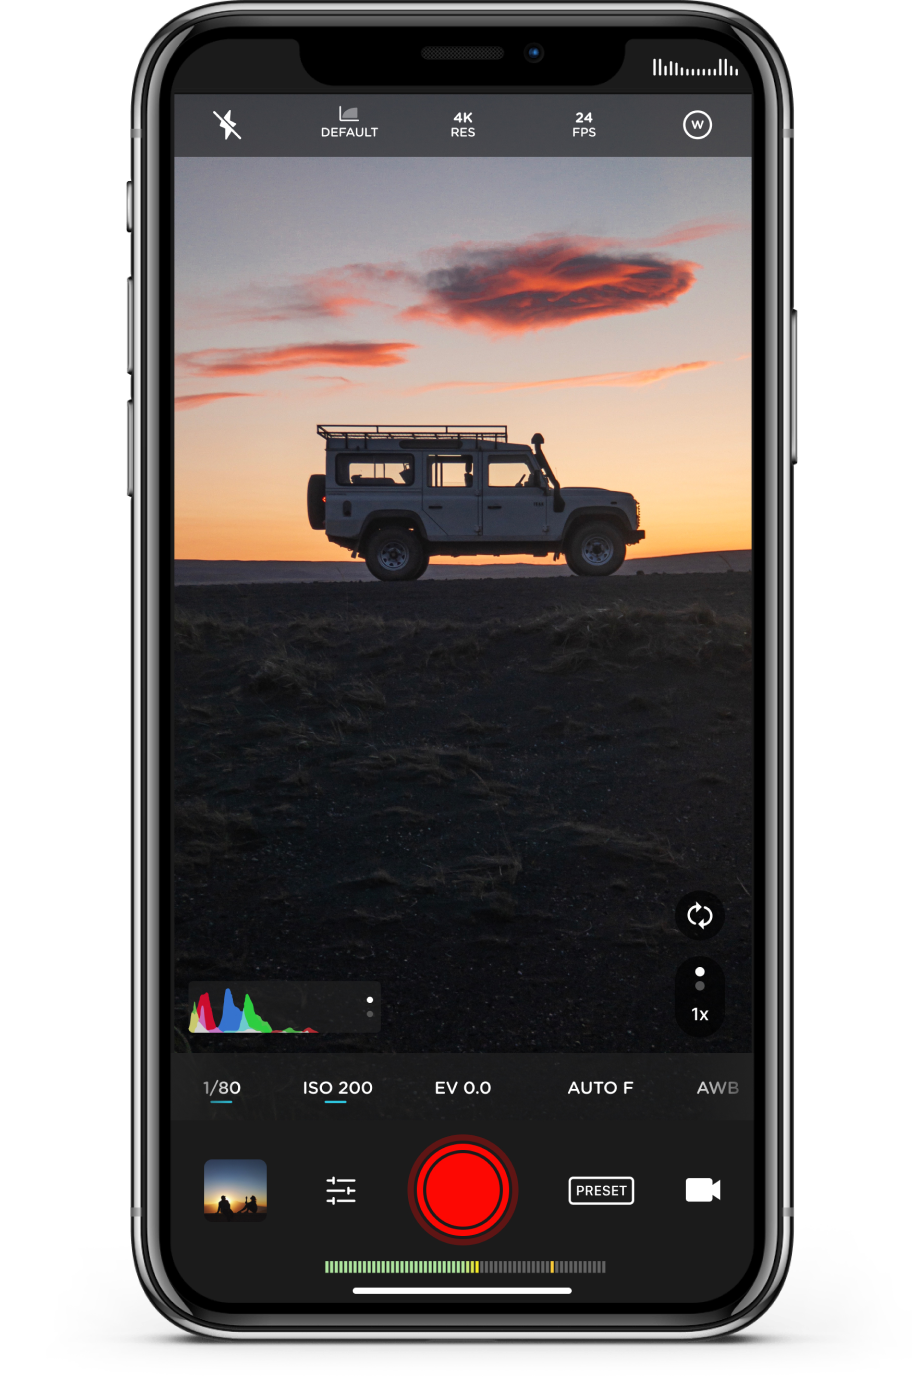 The Moment Pro Camera App on an iPhone X, taking a video of a Land Rover at sunset.